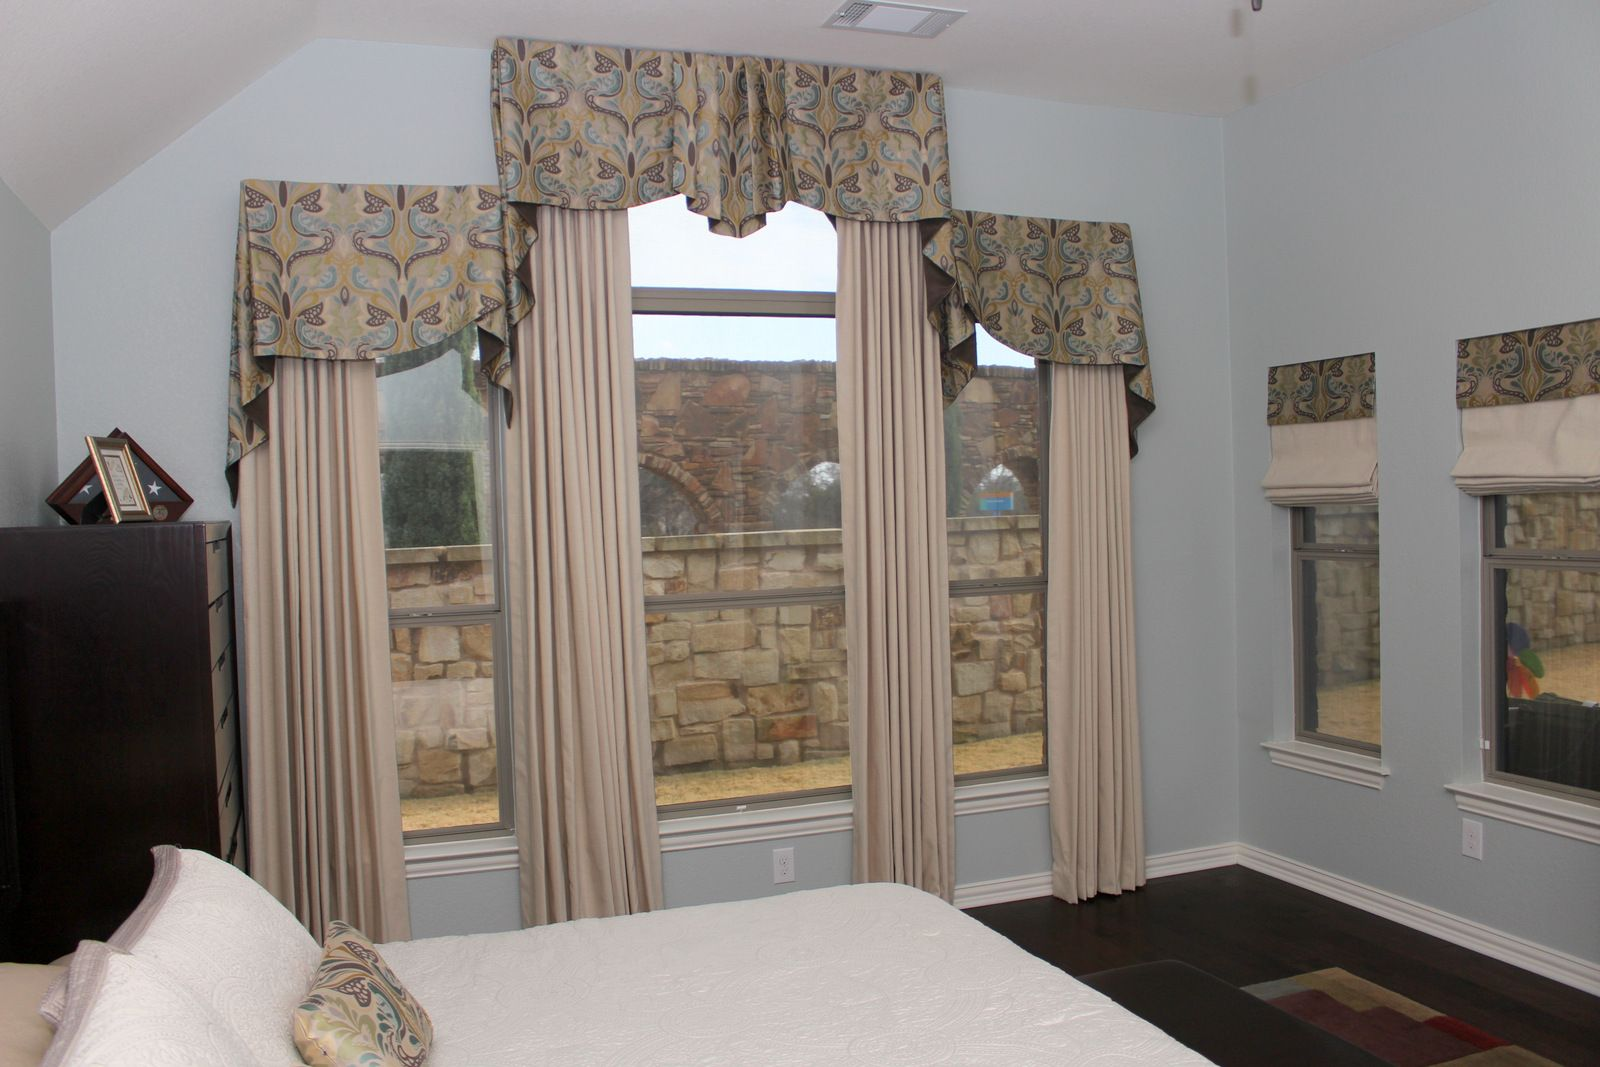 This Difficult Set Of Windows In A Master Bedroom Provided A